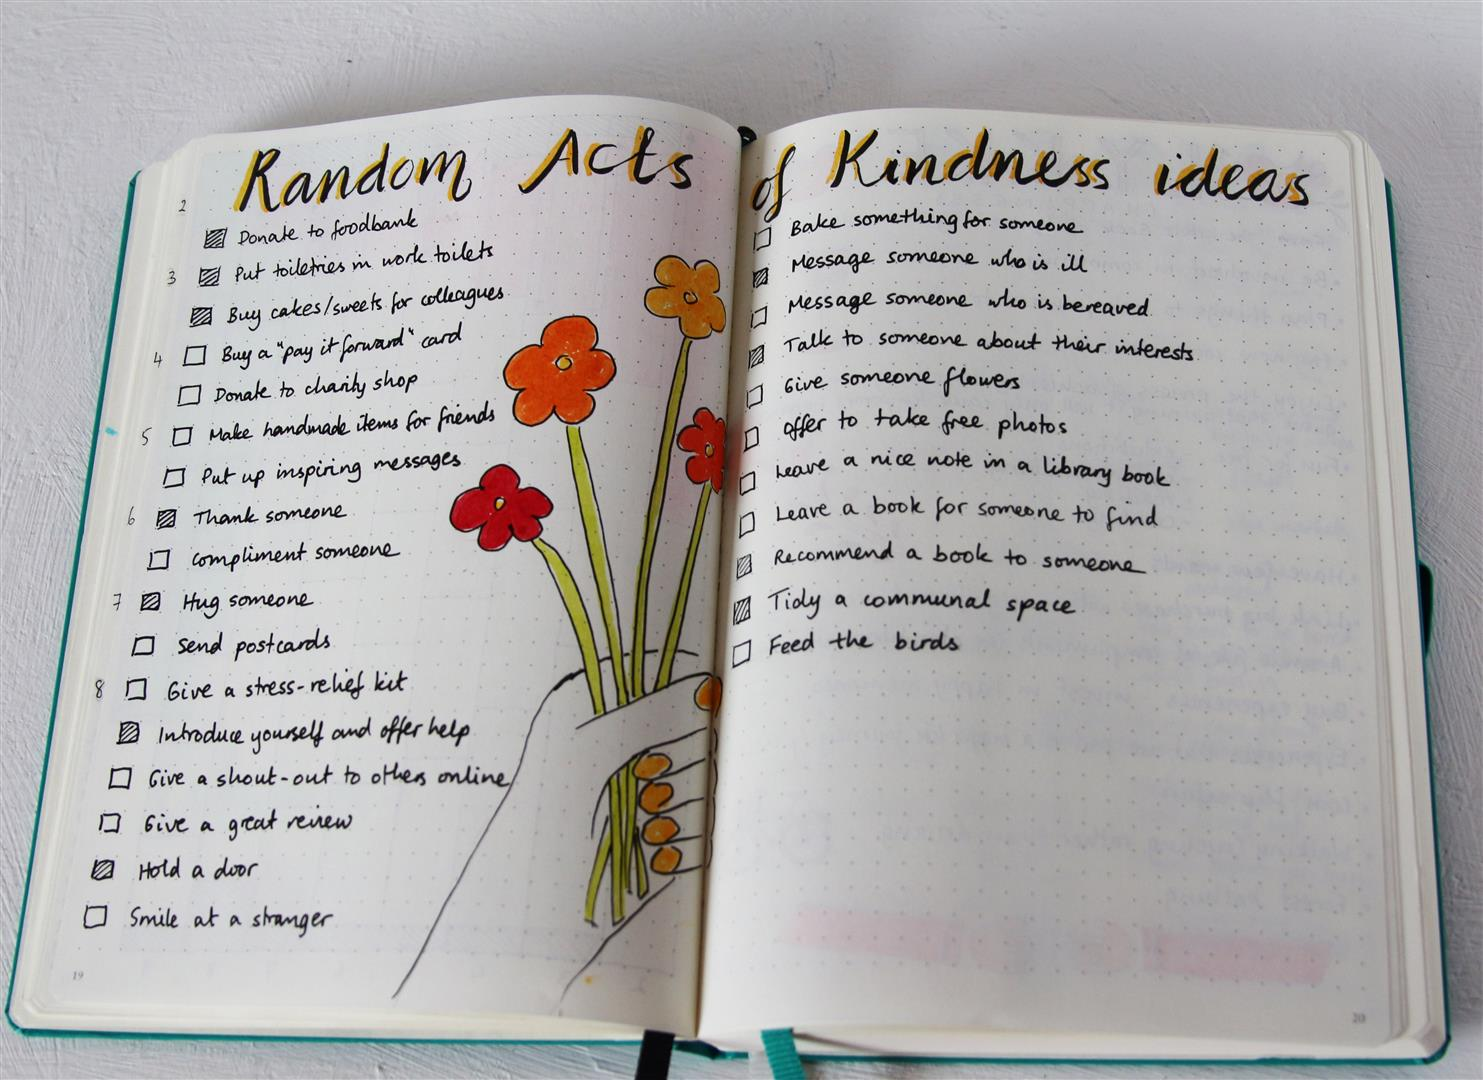 Emuse Bullet Journal Ideas Random Acts Of Kindness